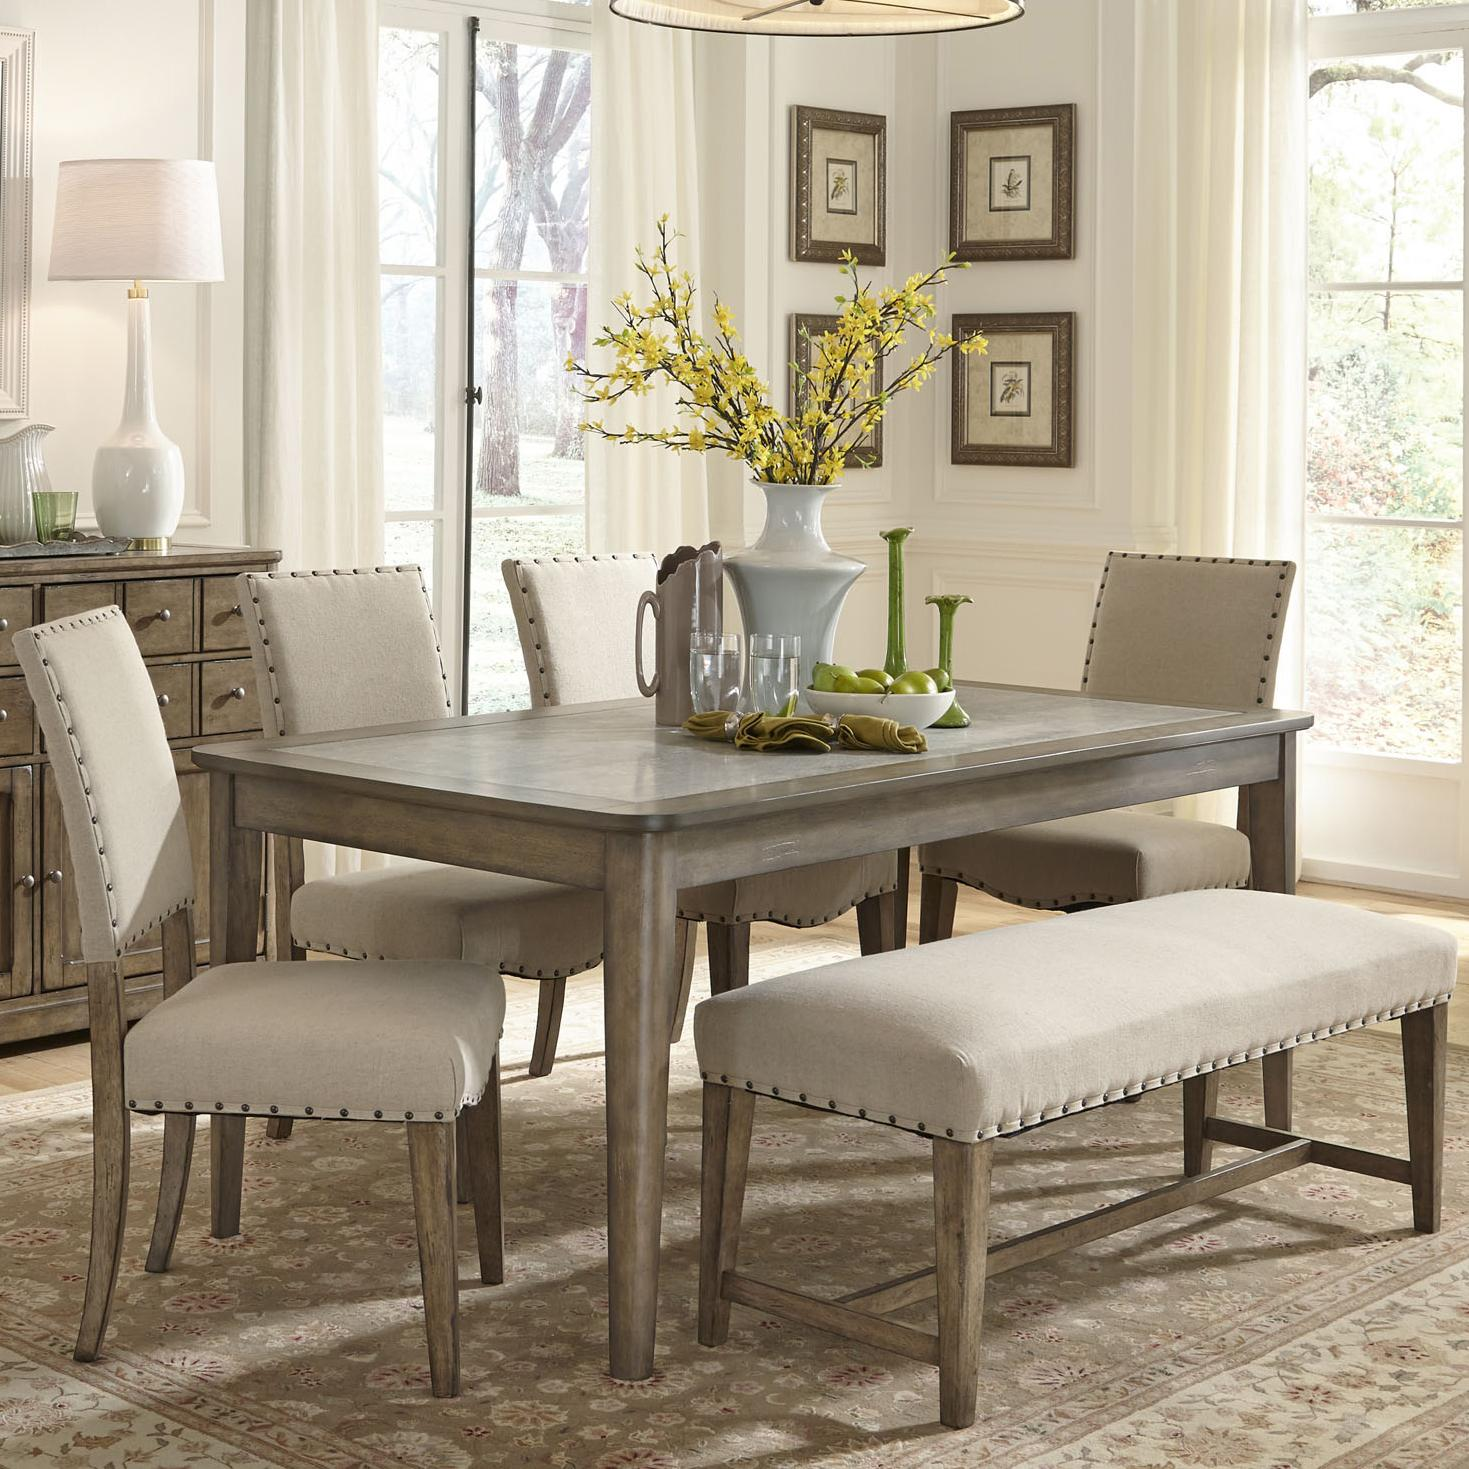 81faa05db245 Liberty Furniture Weatherford Rustic Casual 6 Piece Dining Table and ...